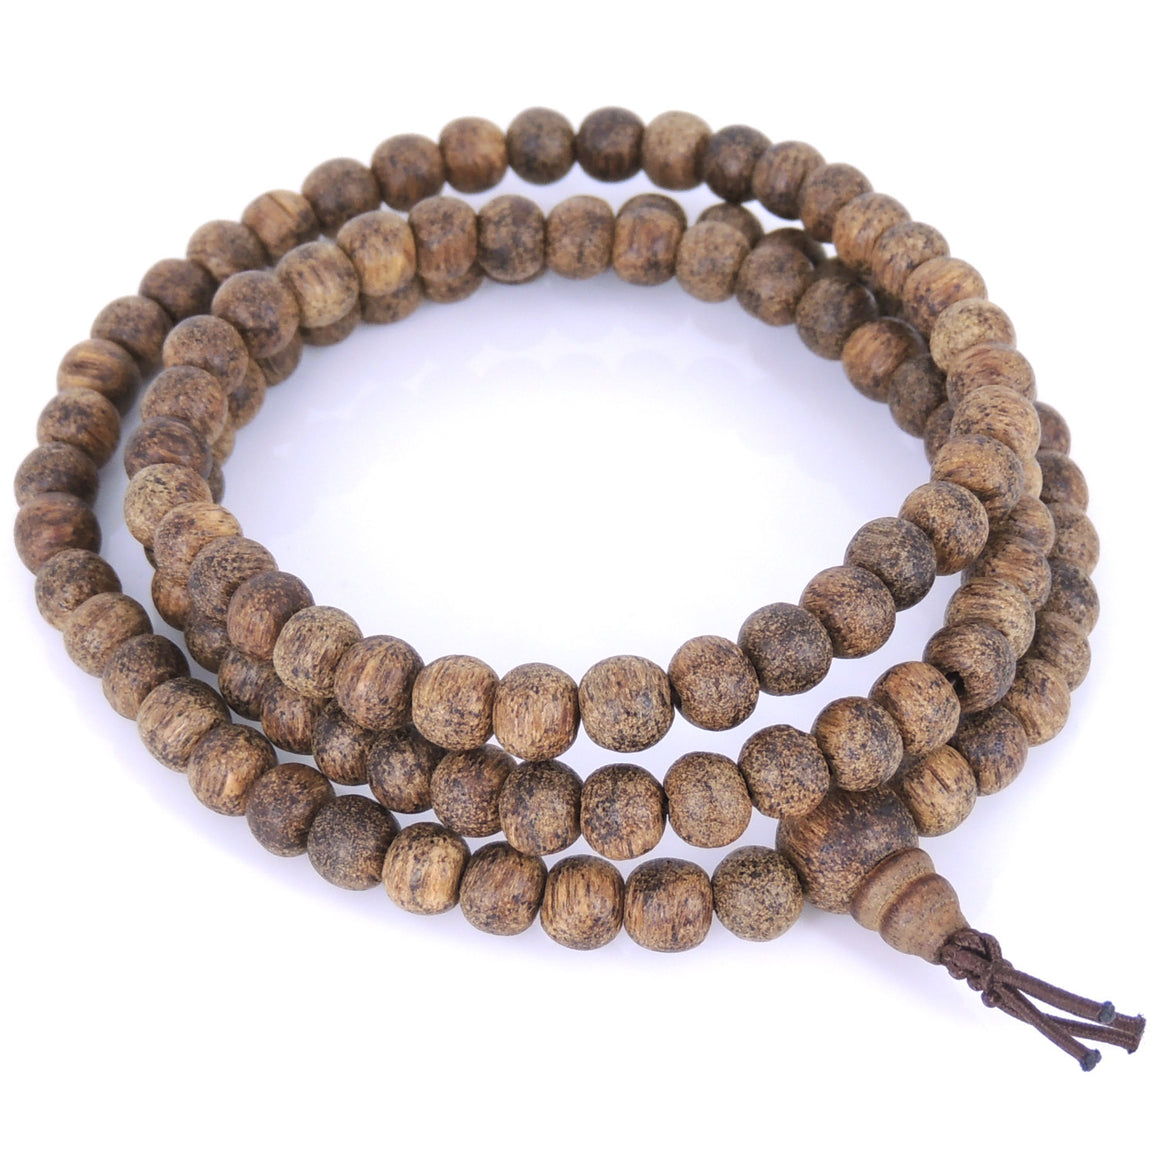 6.5mm Golden Vietnamese Agarwood Bracelet/Necklace 108 Beads for Meditation - SPECIAL PRICE FOR RON